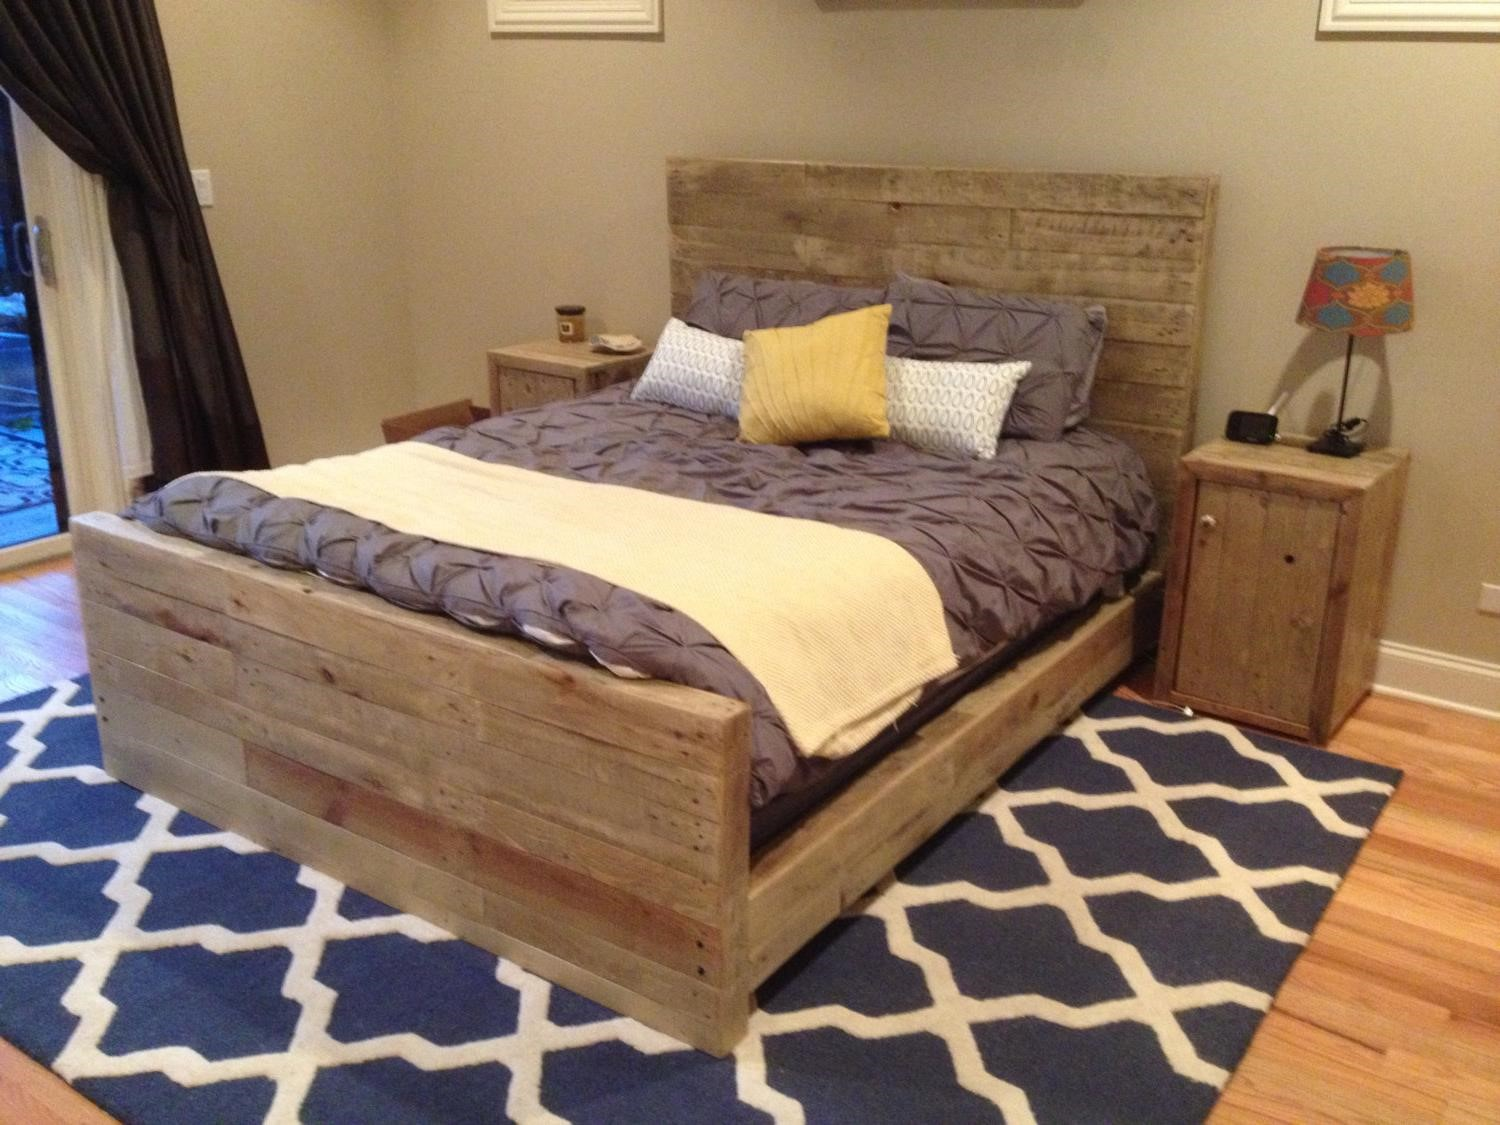 top diy pallet bed projects - elly's diy blog